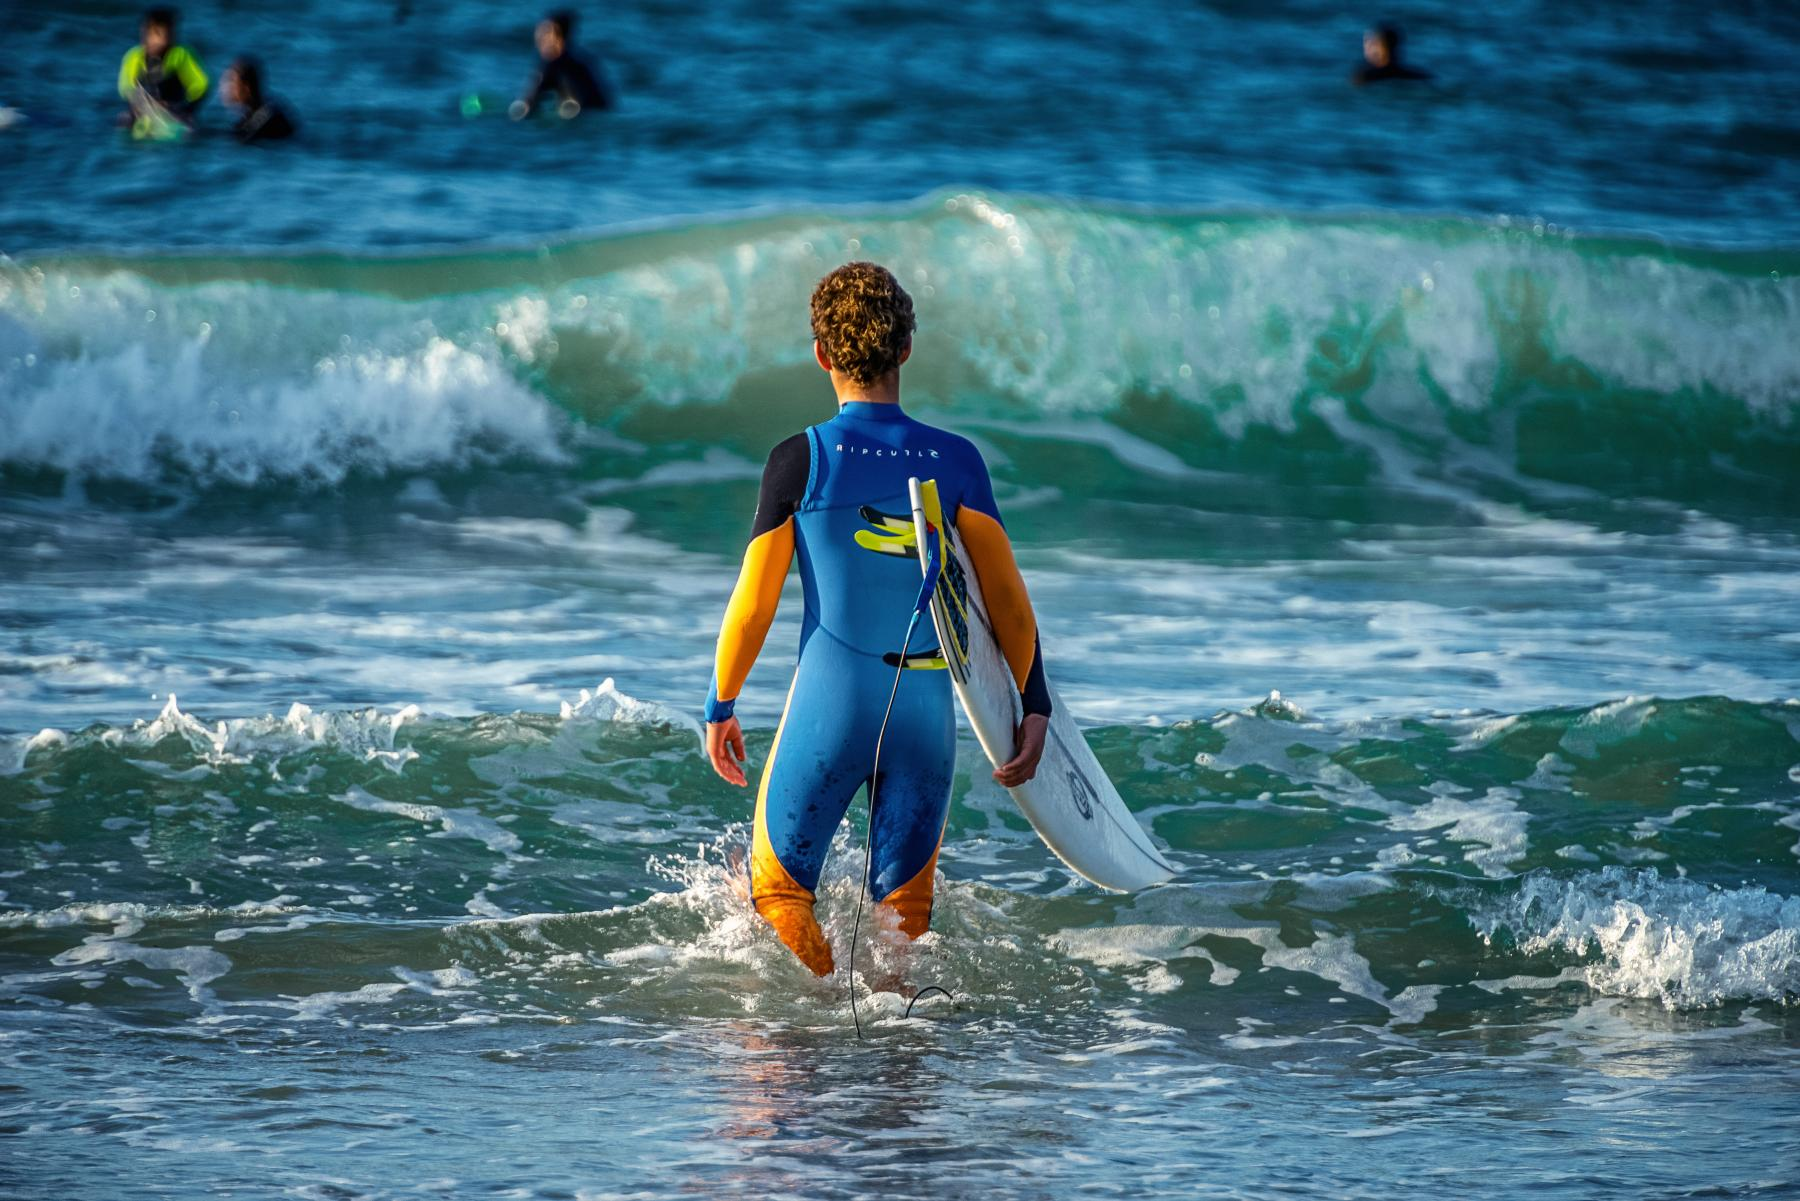 Surfer in a wetsuit at the beach